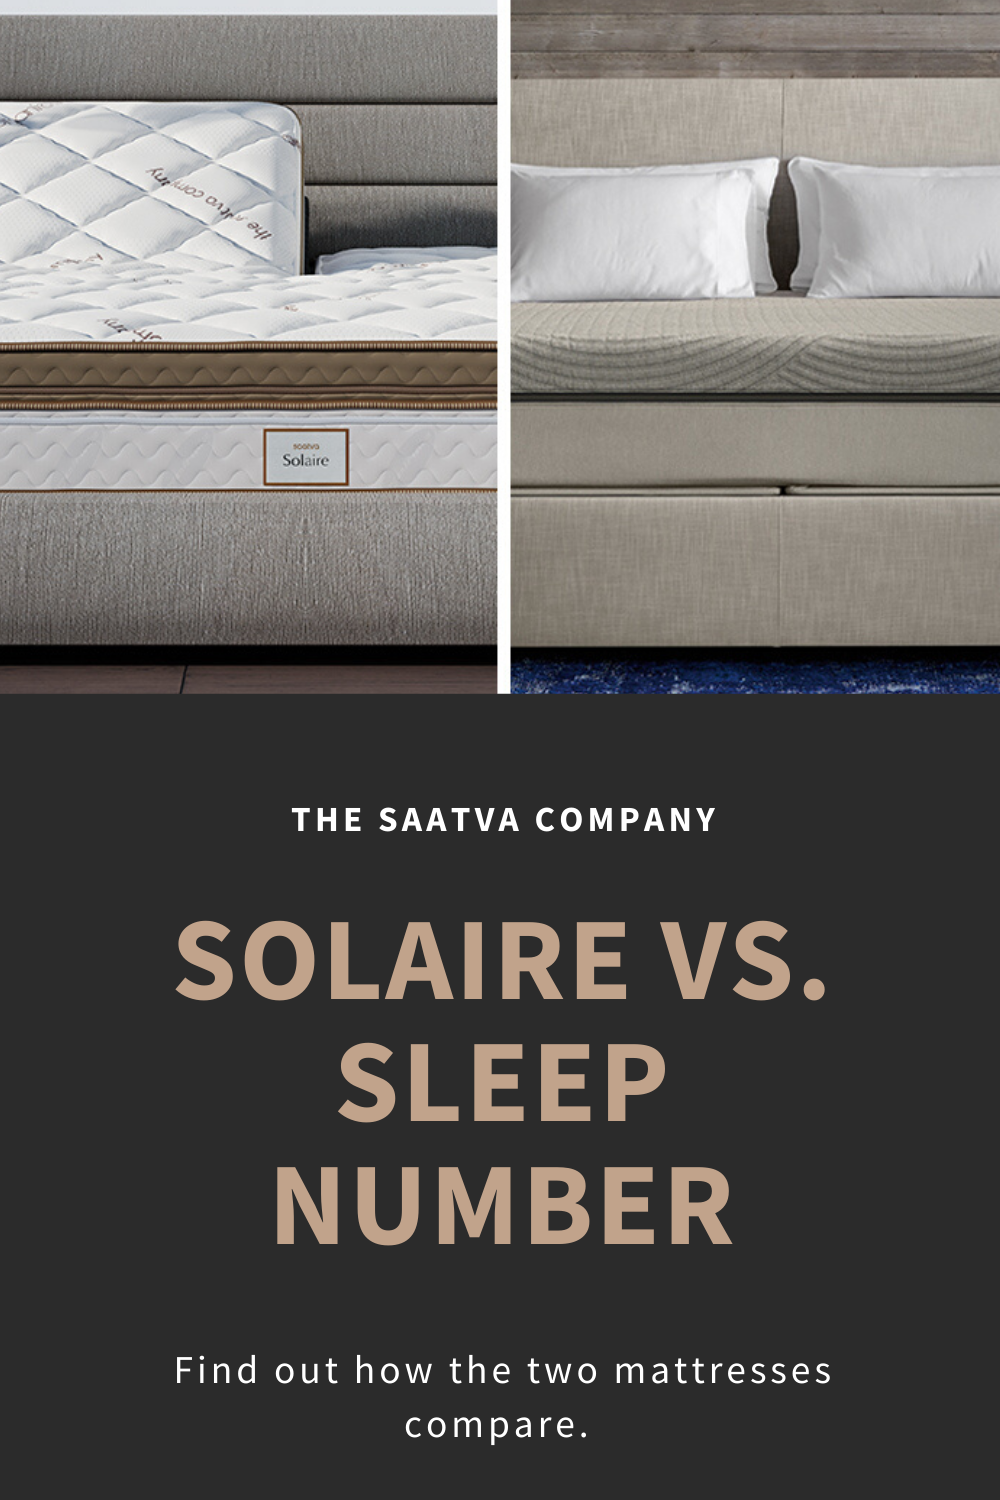 Solaire Vs Sleep Number Everything You Need To Know Saatva Mattress Comparison Air Bed Sleep Number Bed